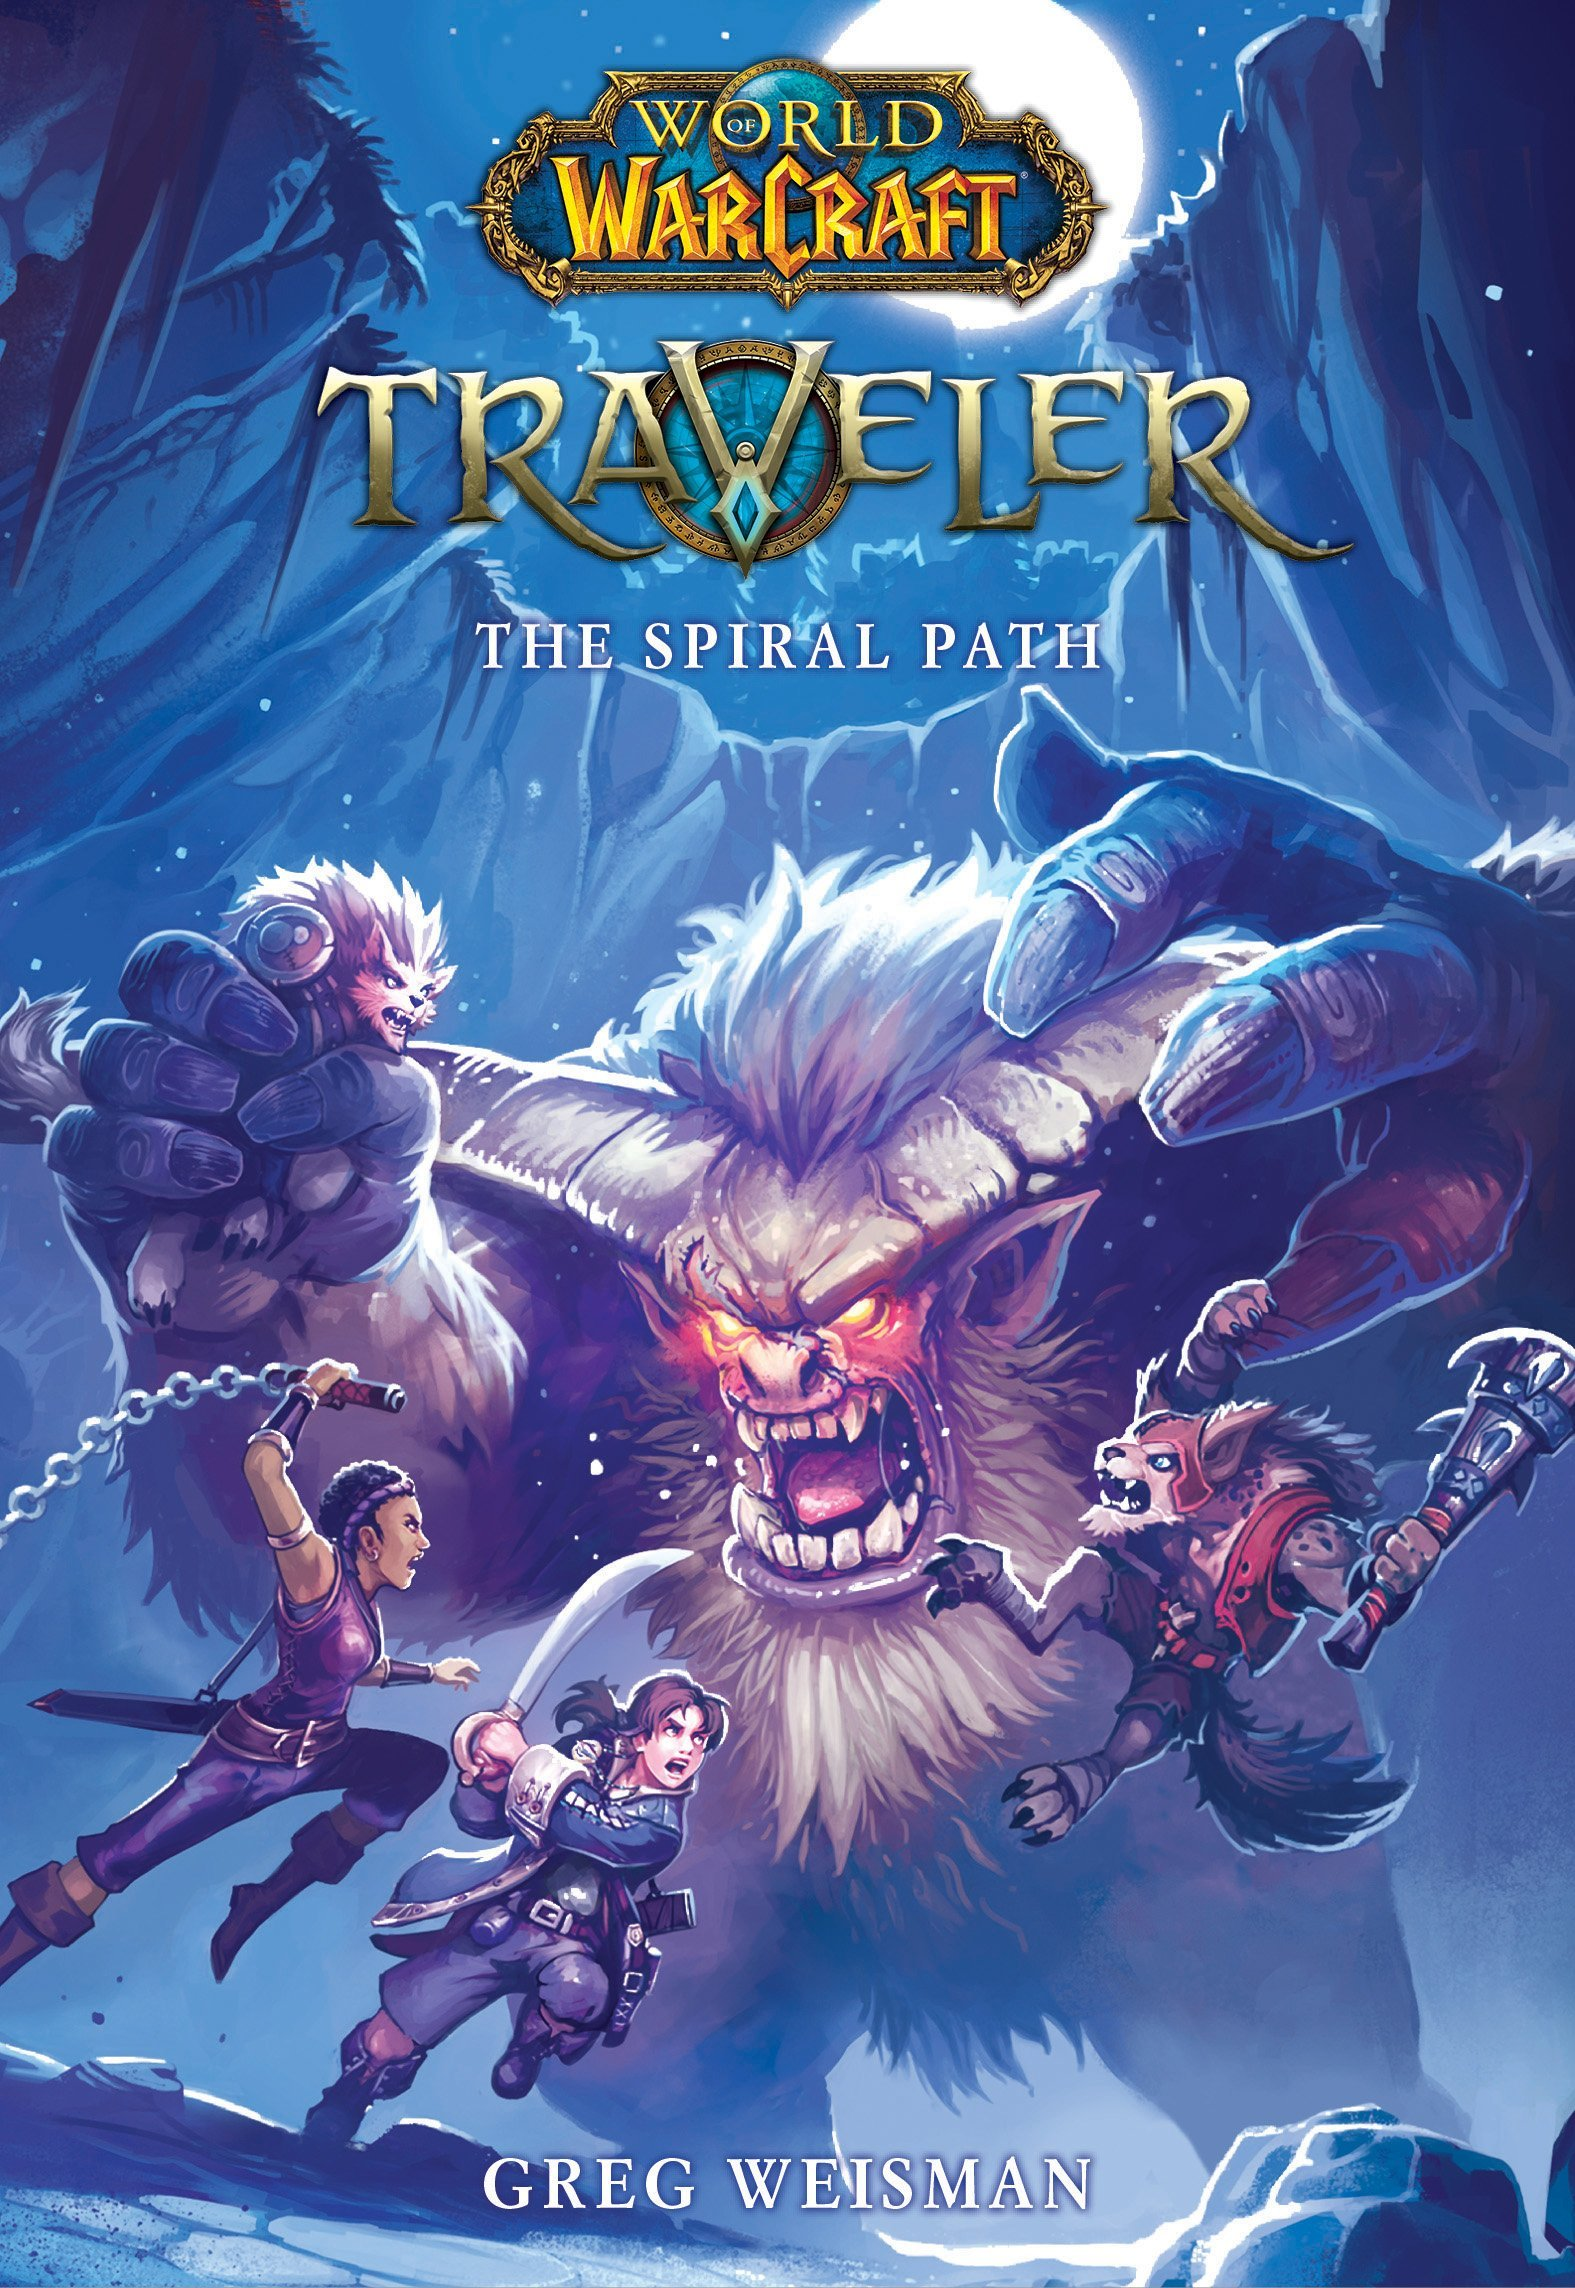 World of Warcraft: Traveler # 2